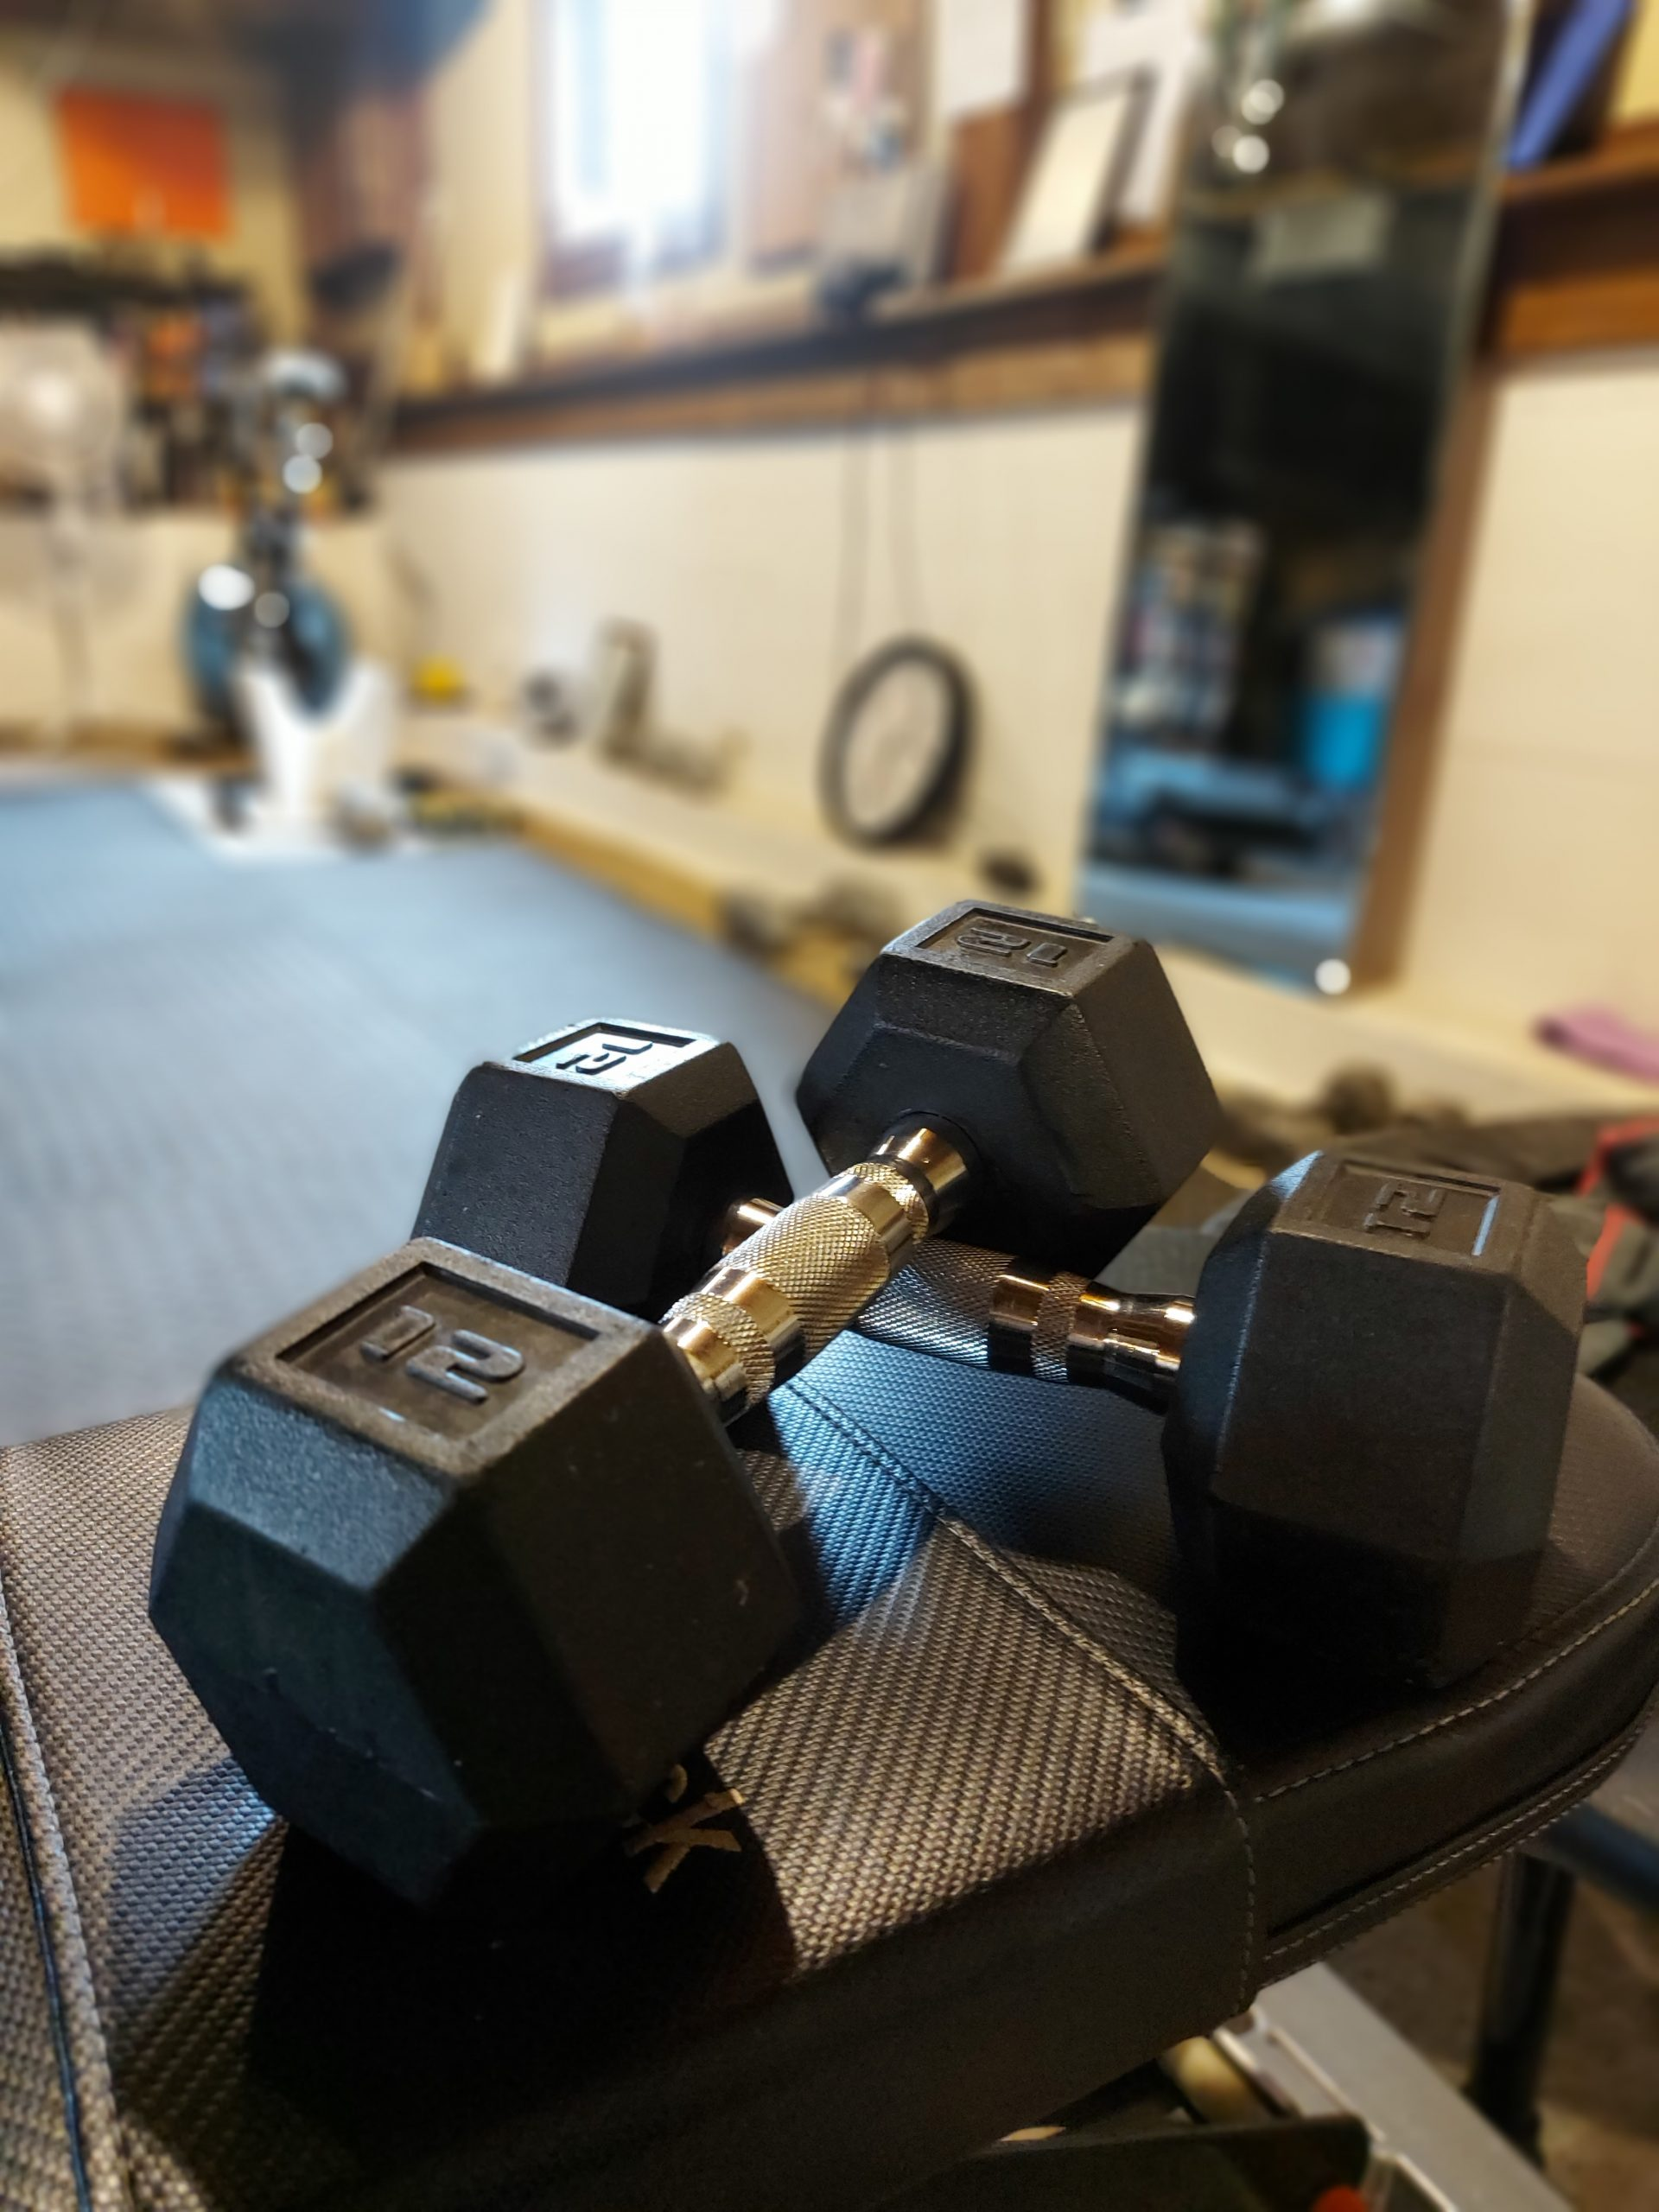 Two dumbbells on a workout bench.